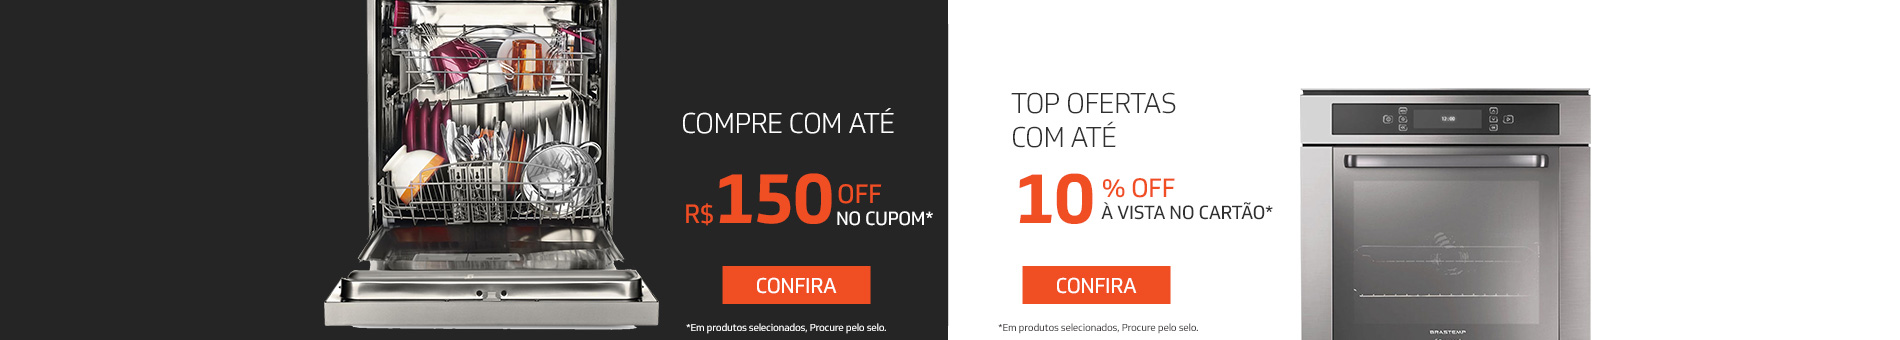 Promoção Interna - 2132 - camp-brastemp2_150off-10vista-duplo_5122017_home1 - 150off-10vista-duplo - 1